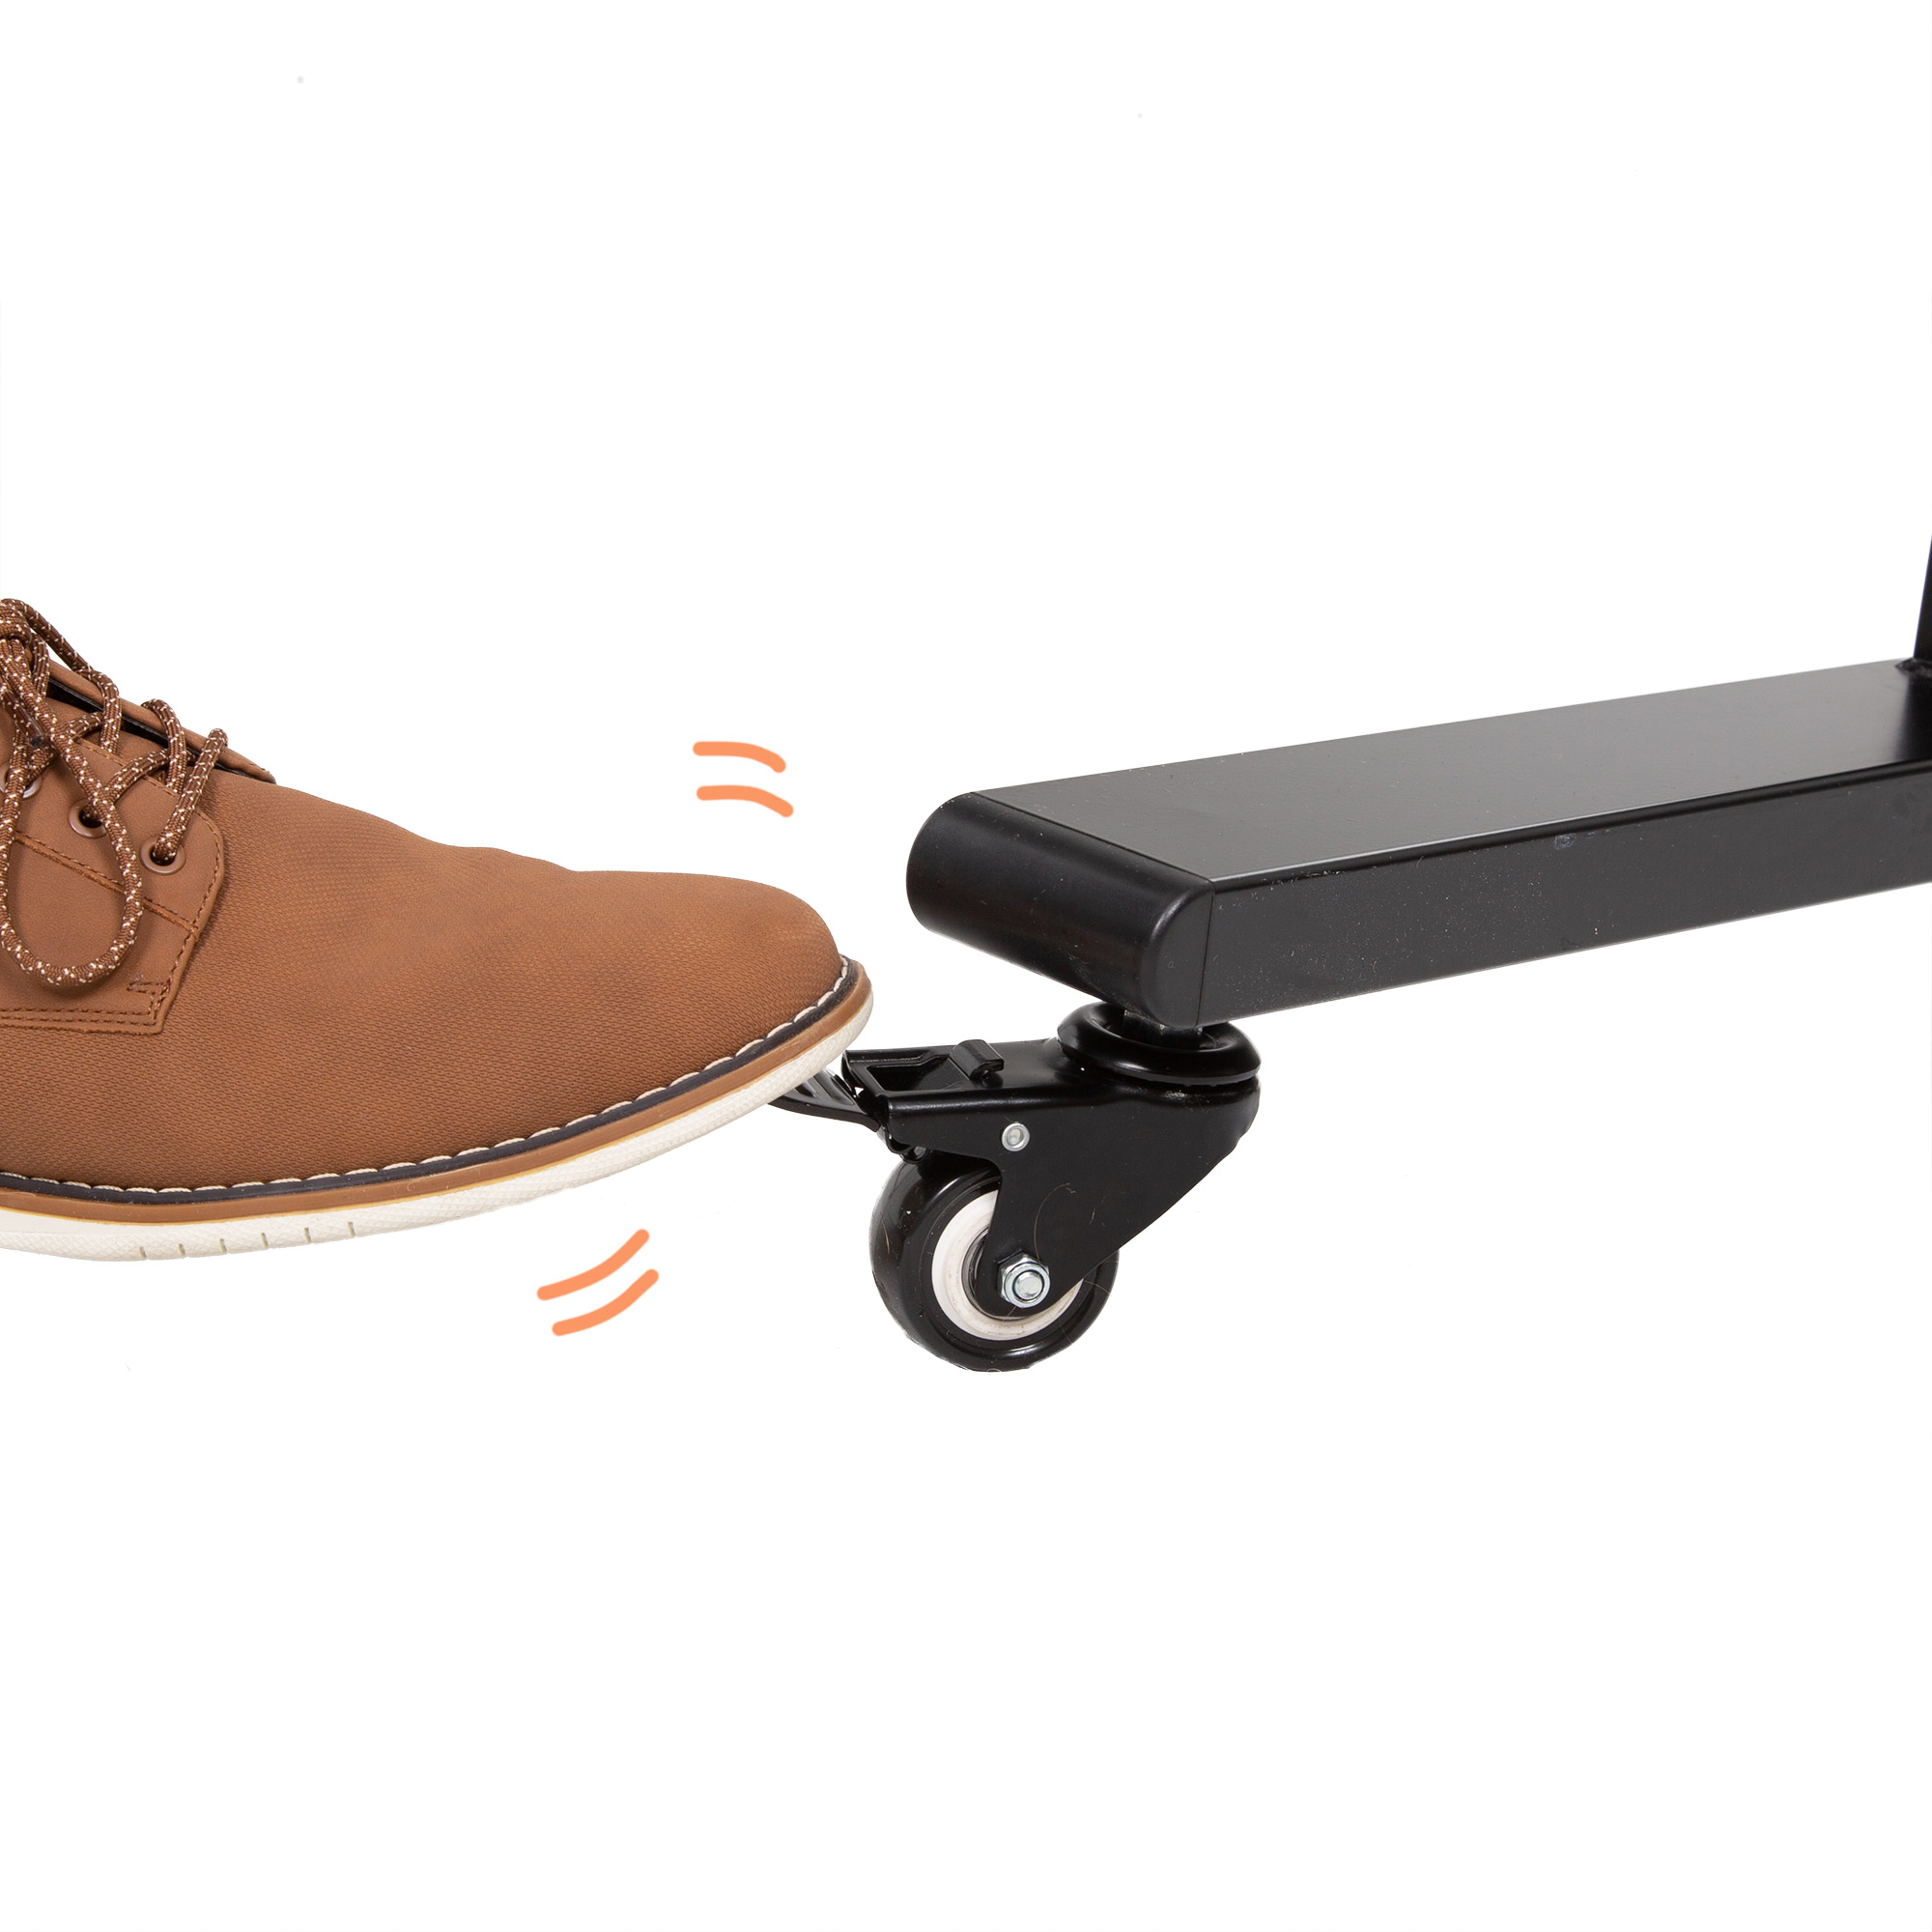 Attachable Wheels or Leveling Feet